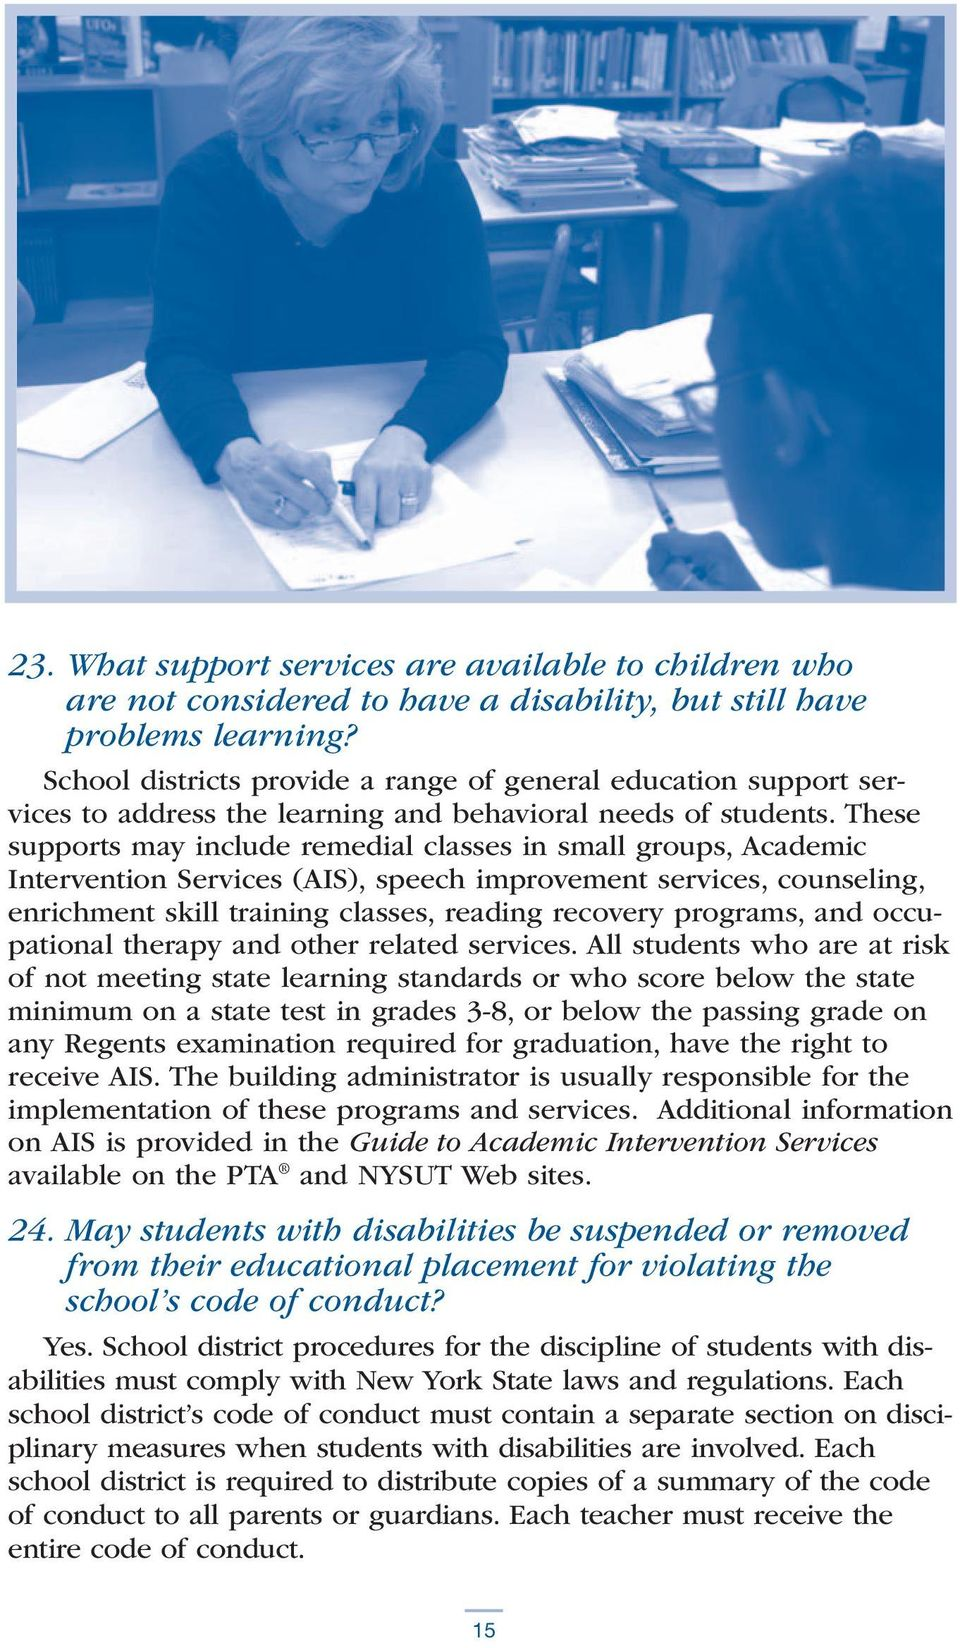 These supports may include remedial classes in small groups, Academic Intervention Services (AIS), speech improvement services, counseling, enrichment skill training classes, reading recovery